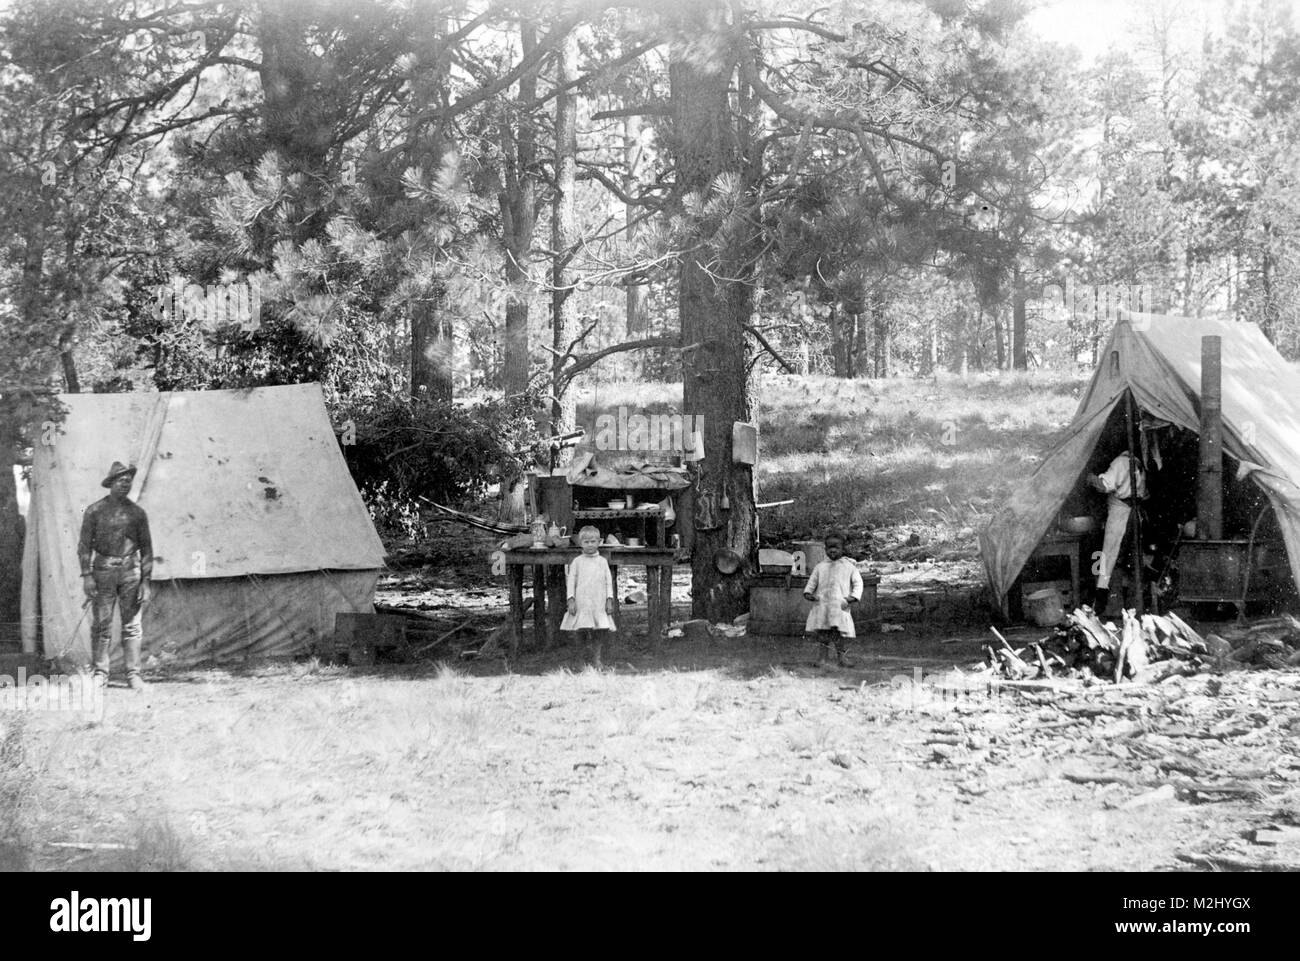 Buffalo Soldier Camp, 10th Cavalry Regiment - Stock Image